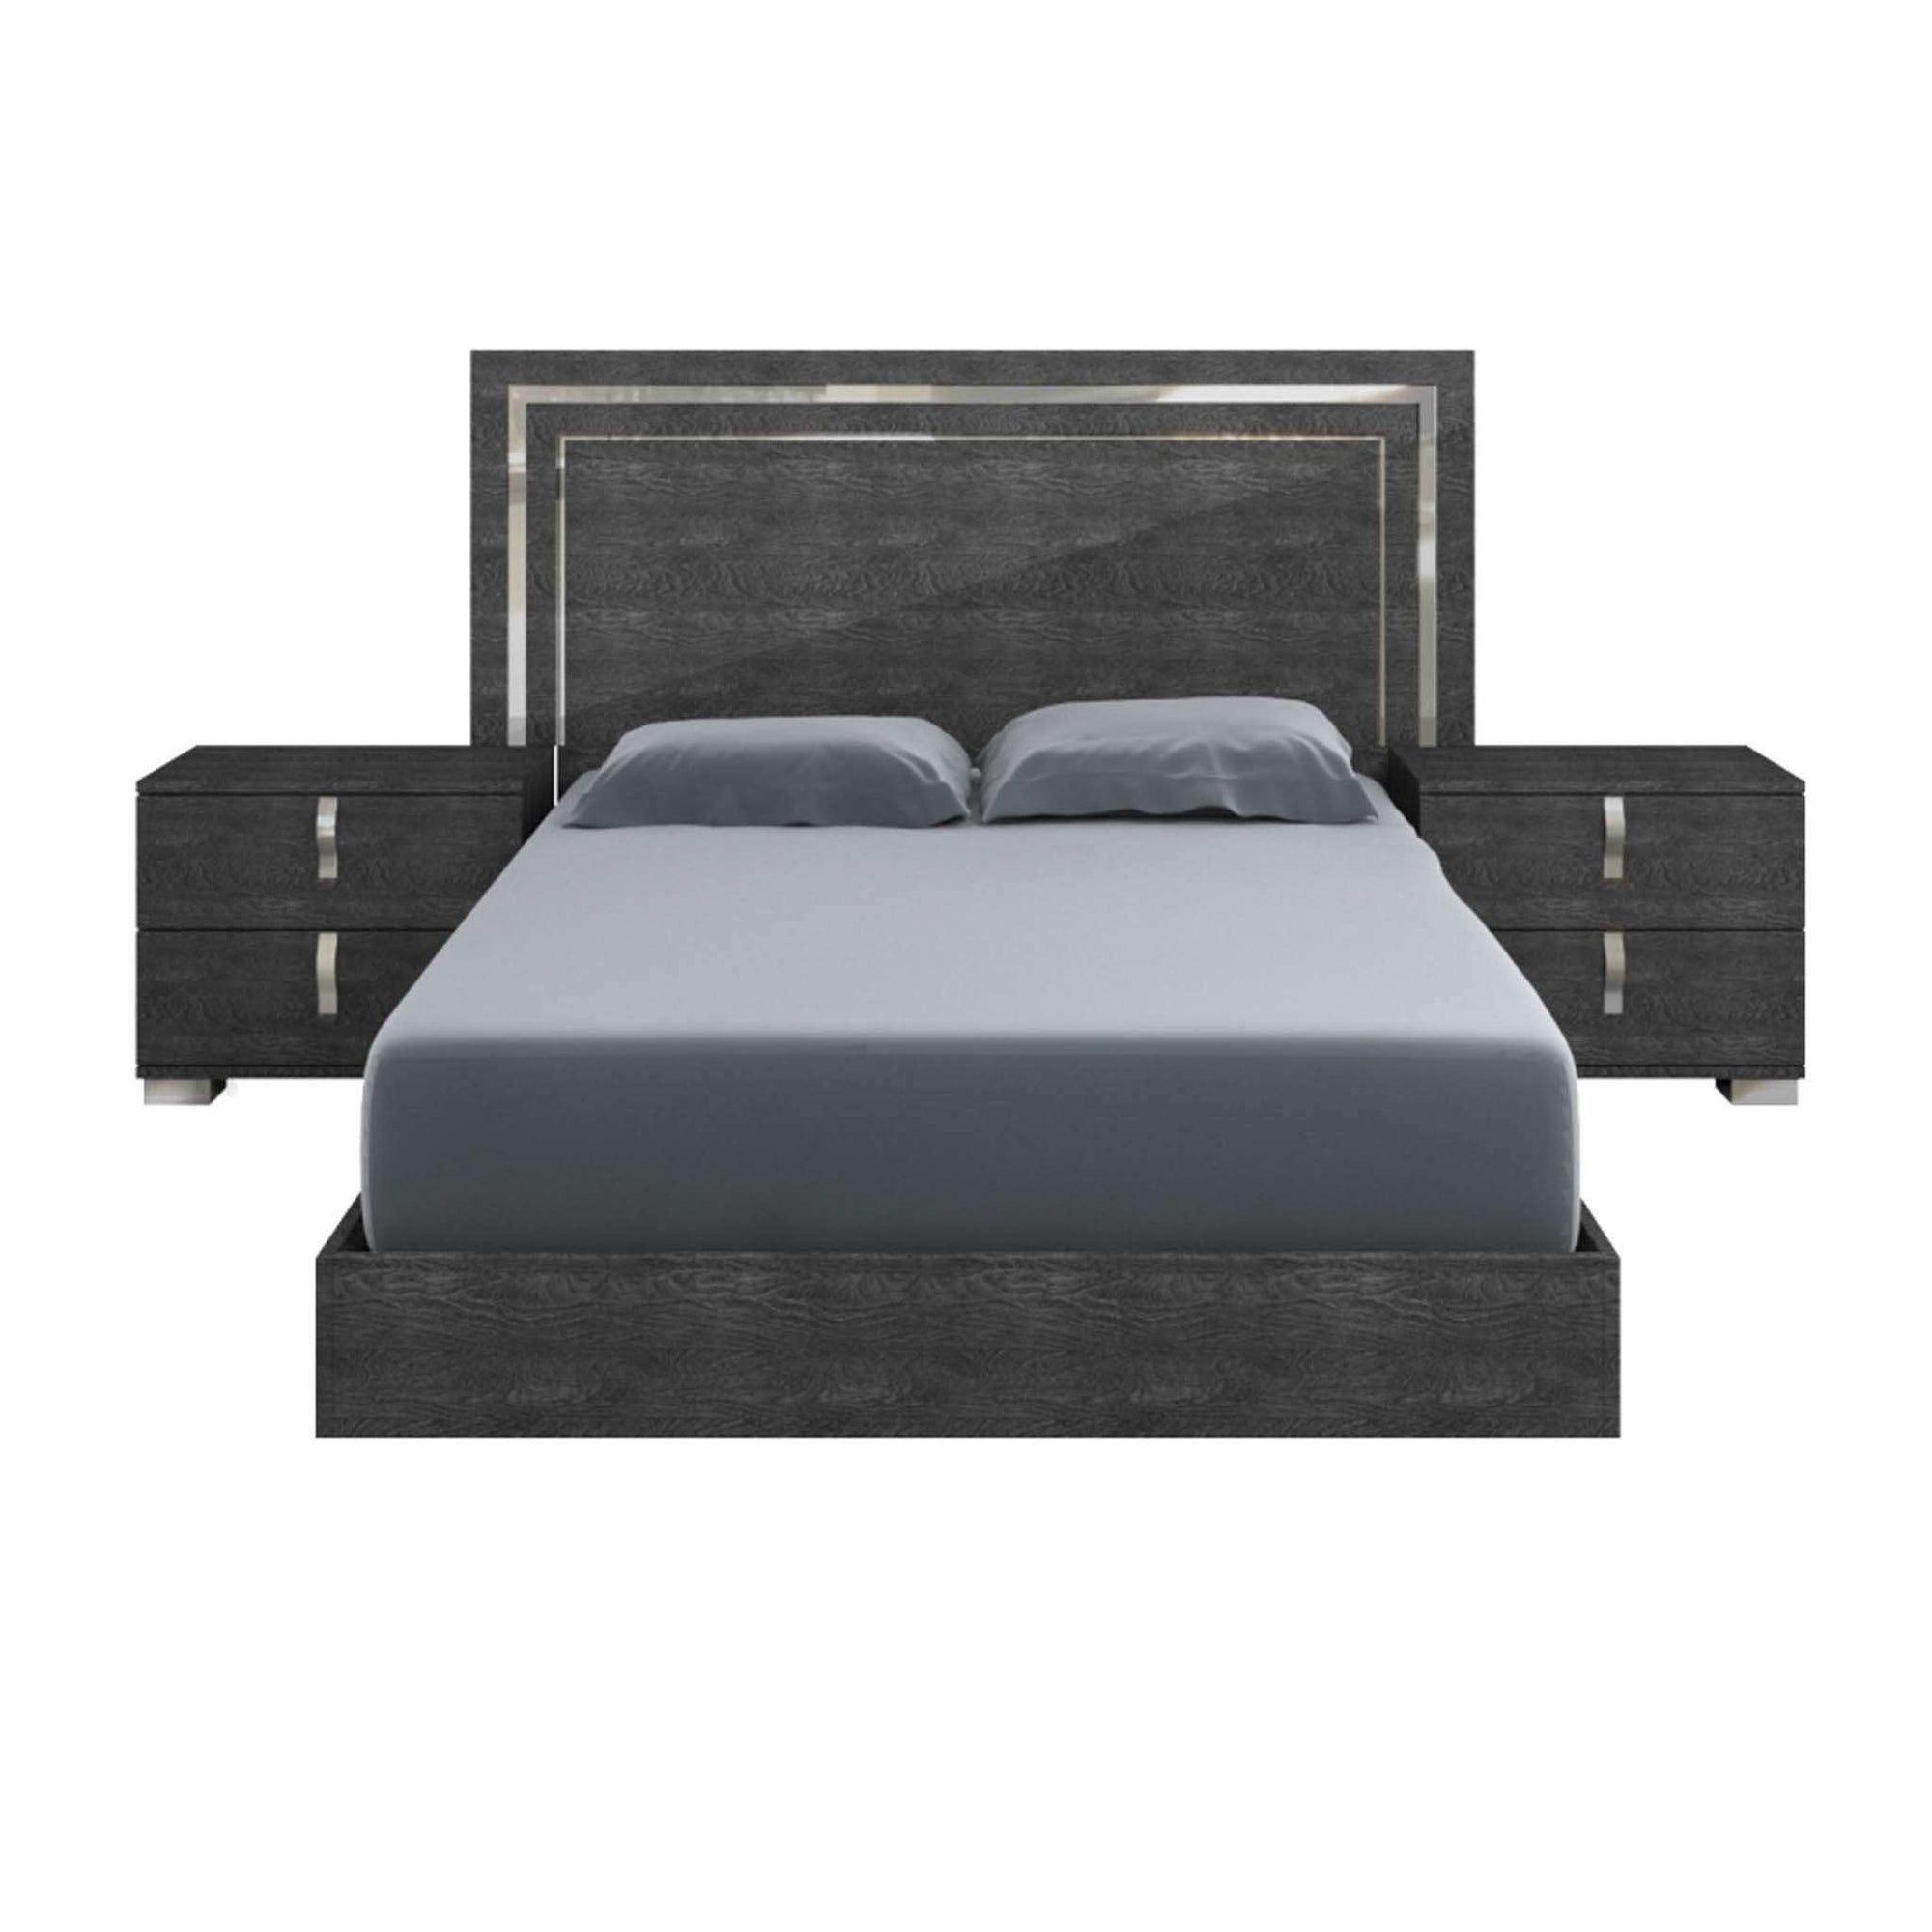 Star International Furniture-Noble Cal King Bed-Bed-MODTEMPO